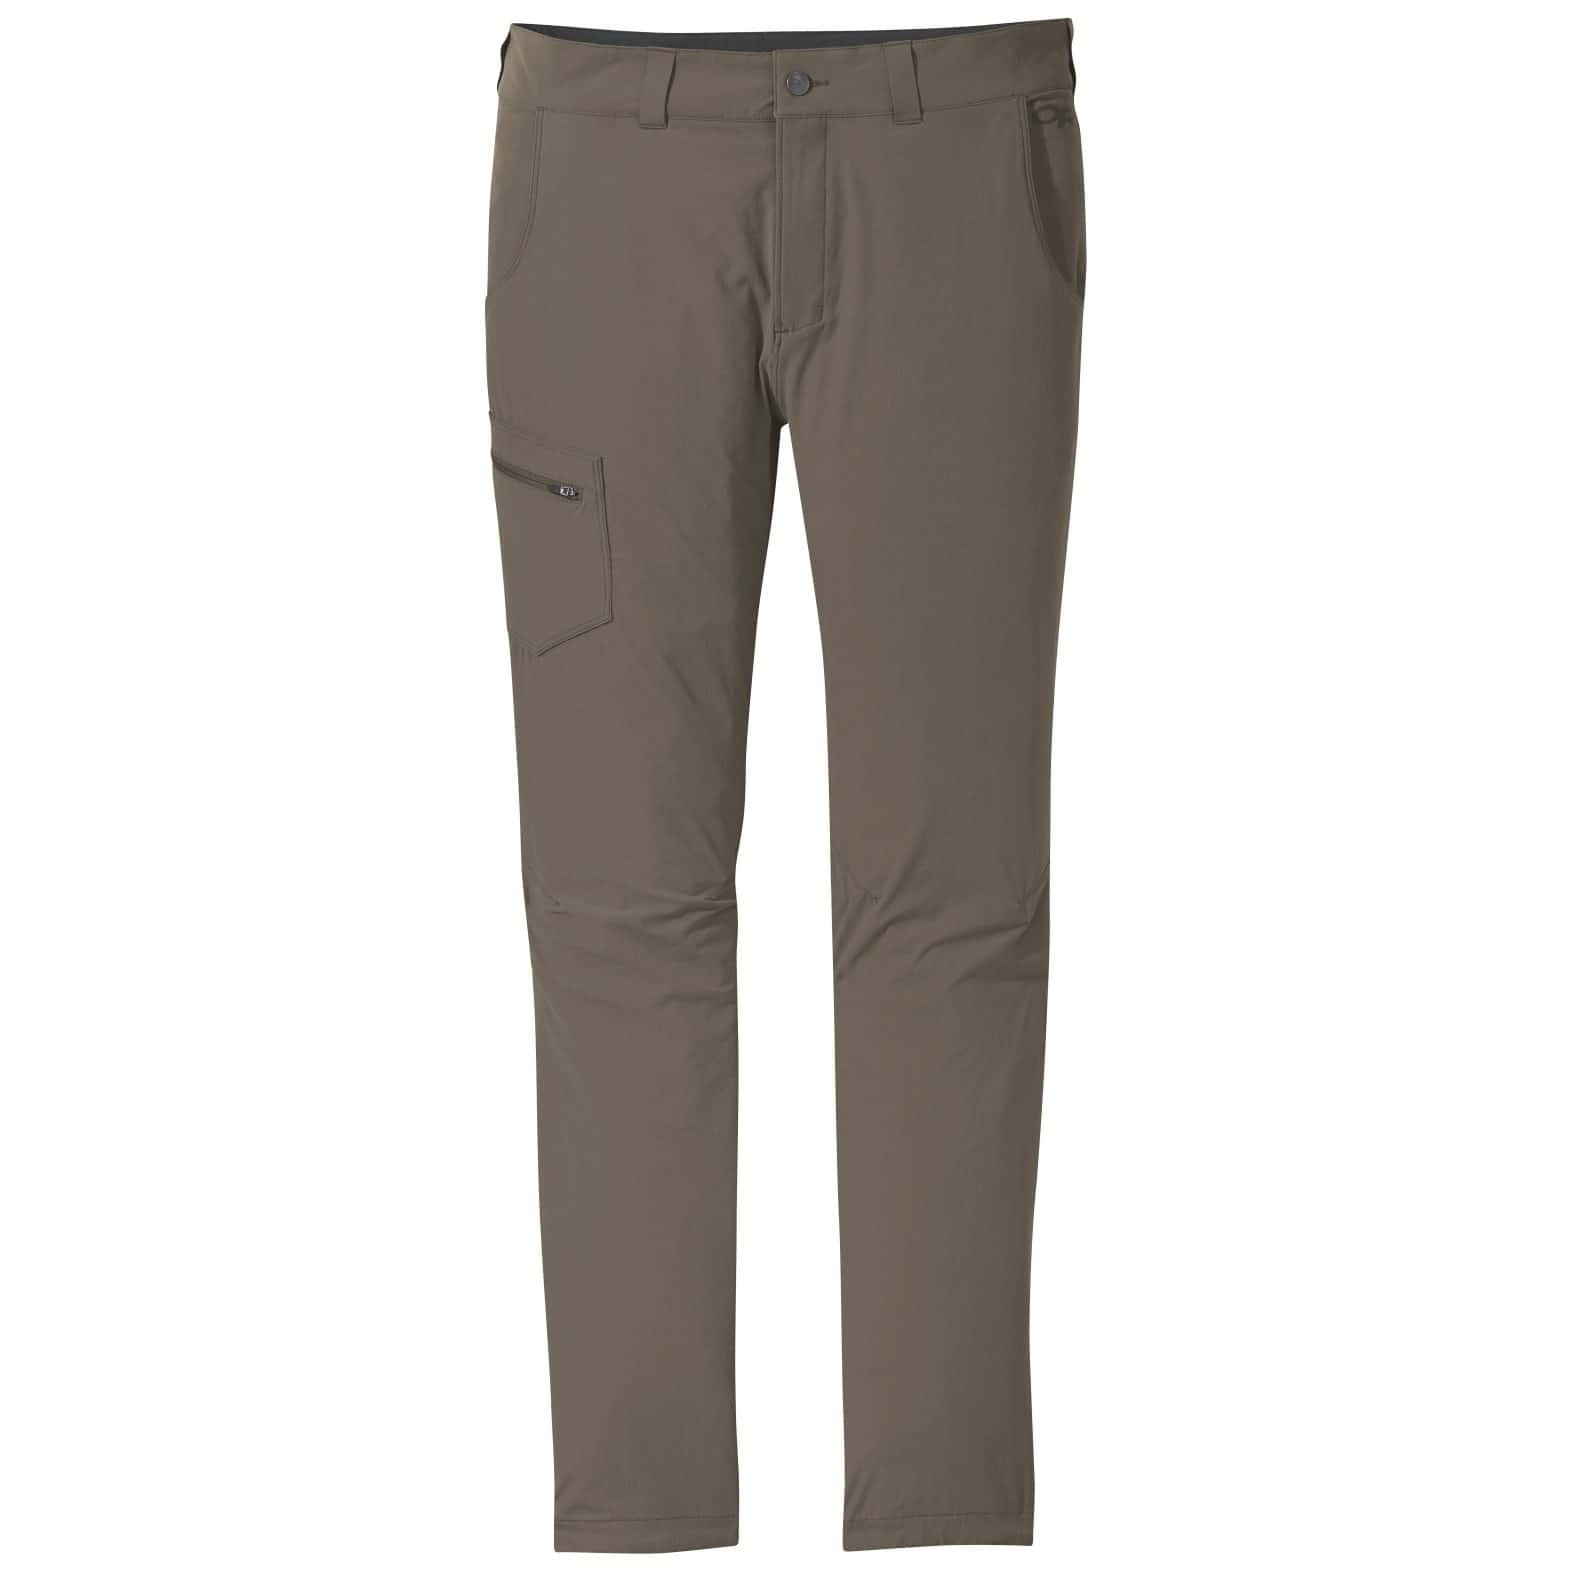 Outdoor Research-Ferrosi Pants - Men's